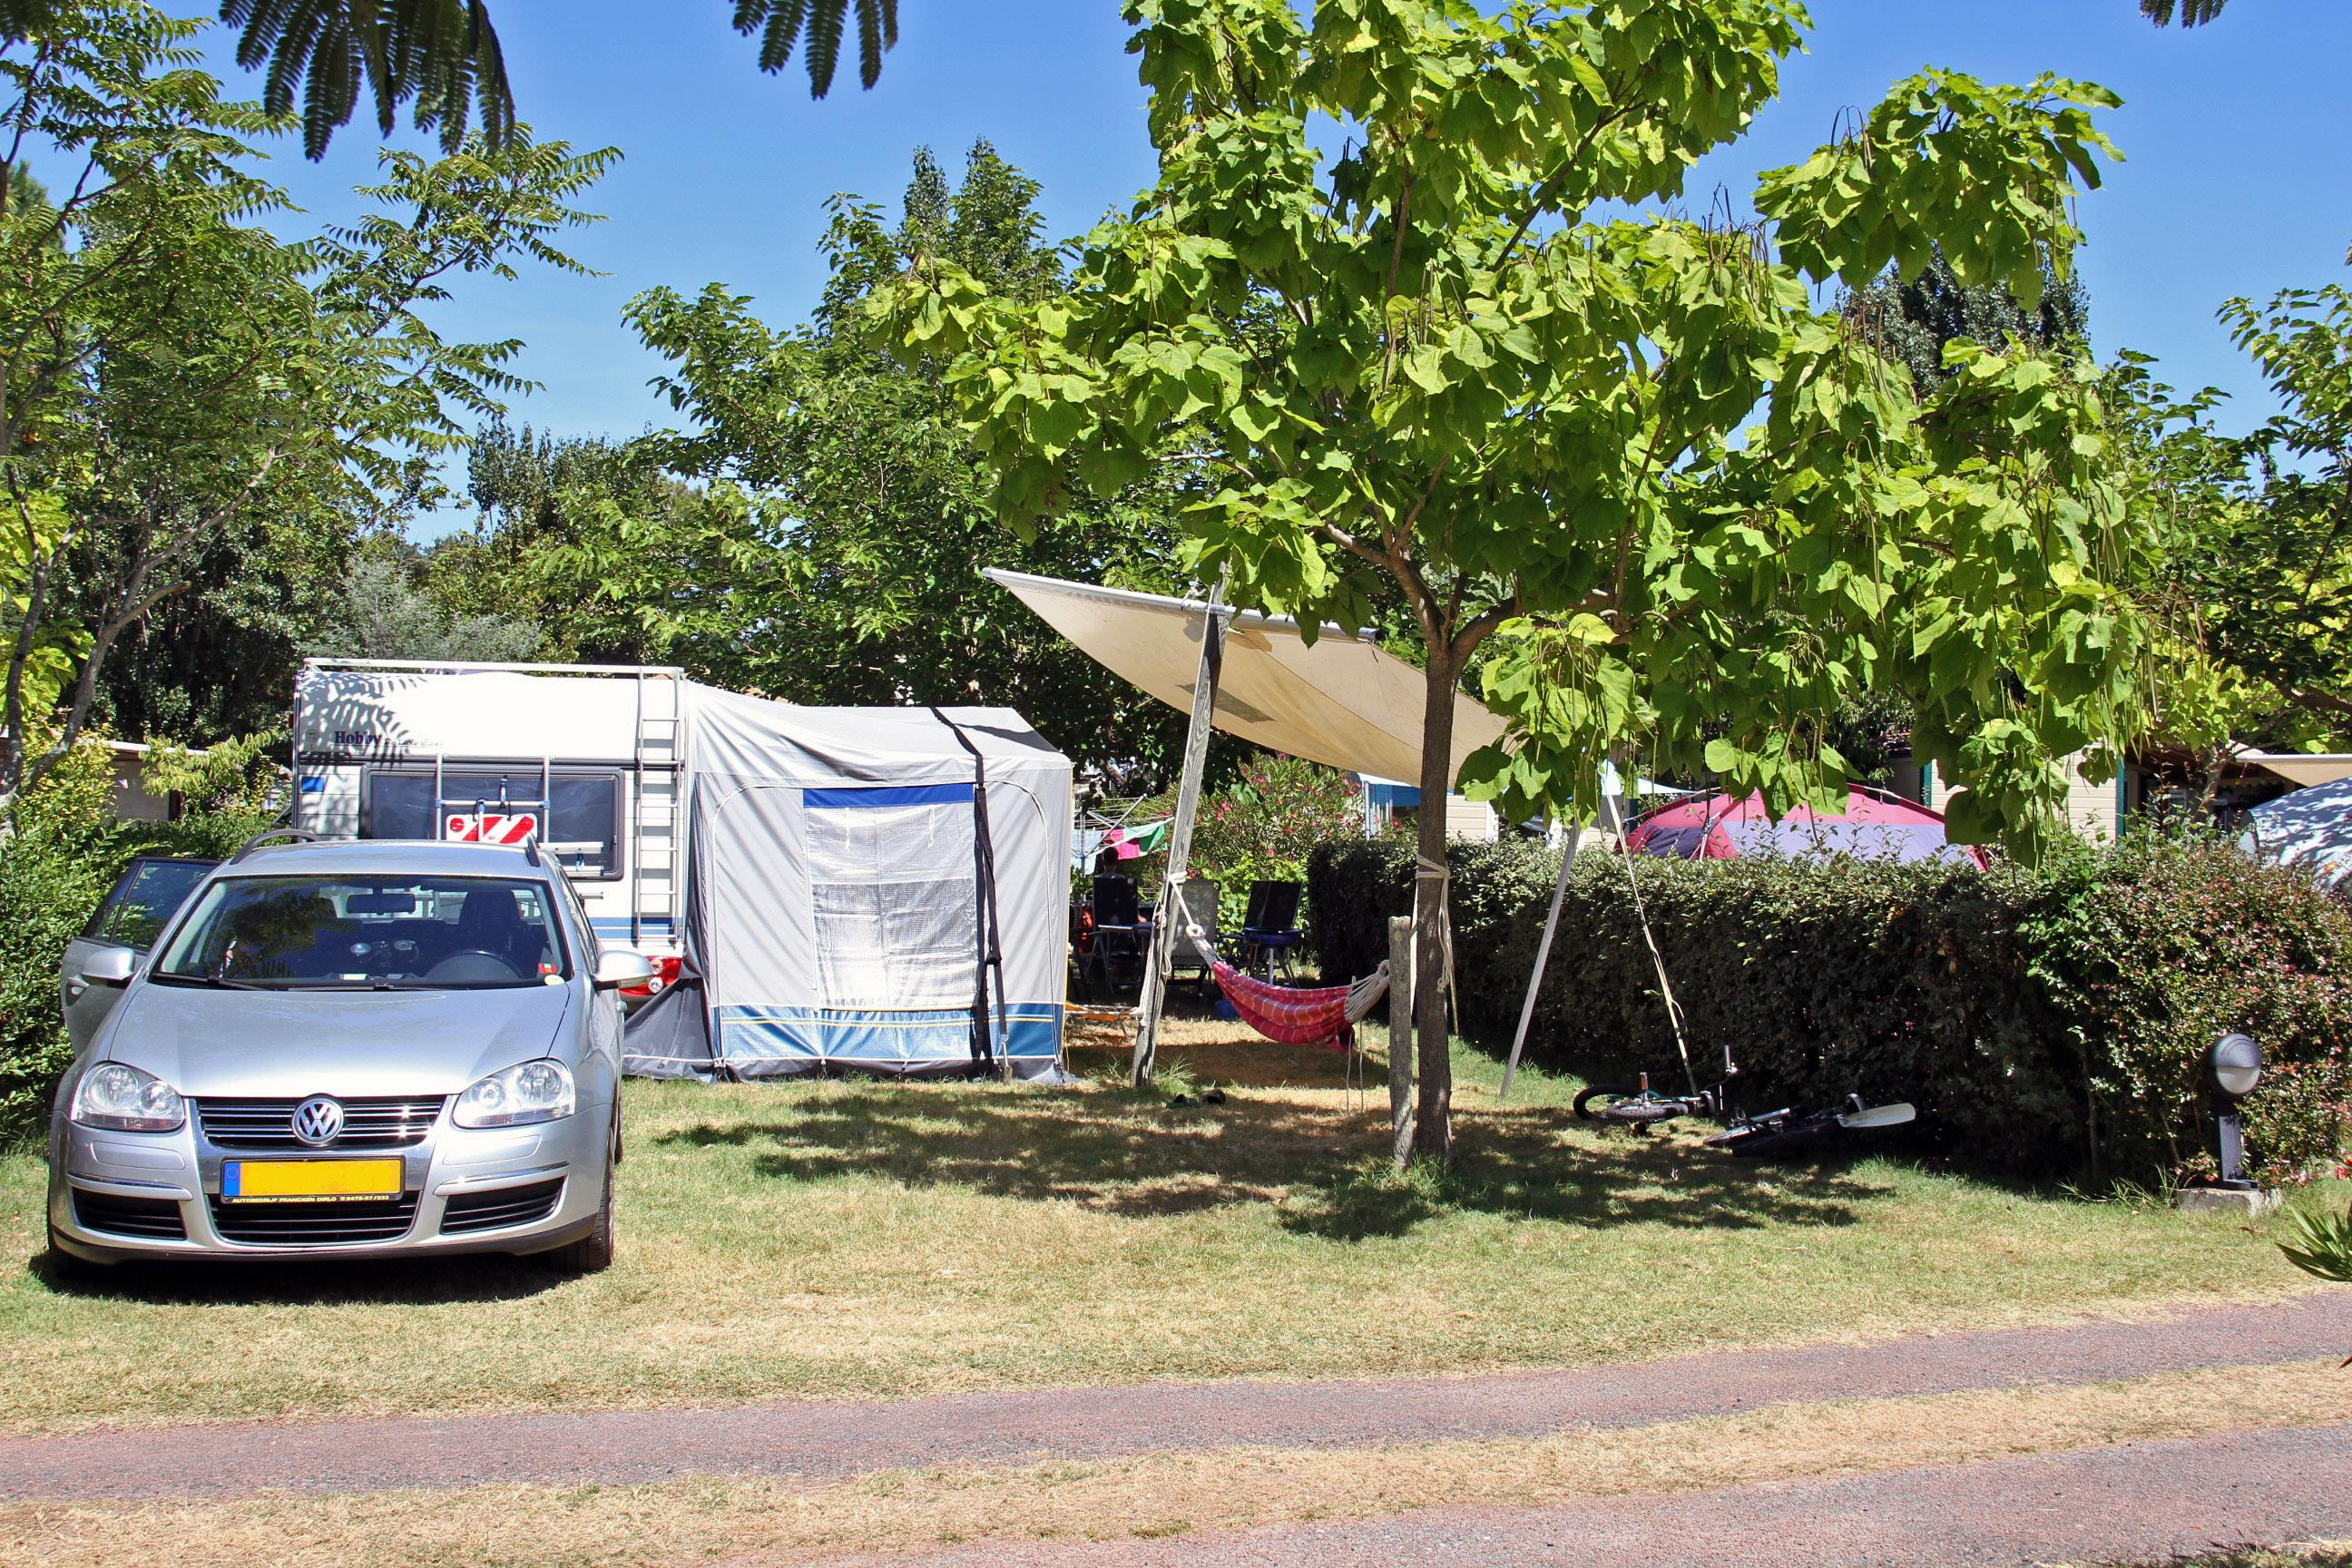 Emplacement - Emplacement Camping 'Espace-Nature' - Camping La Brande